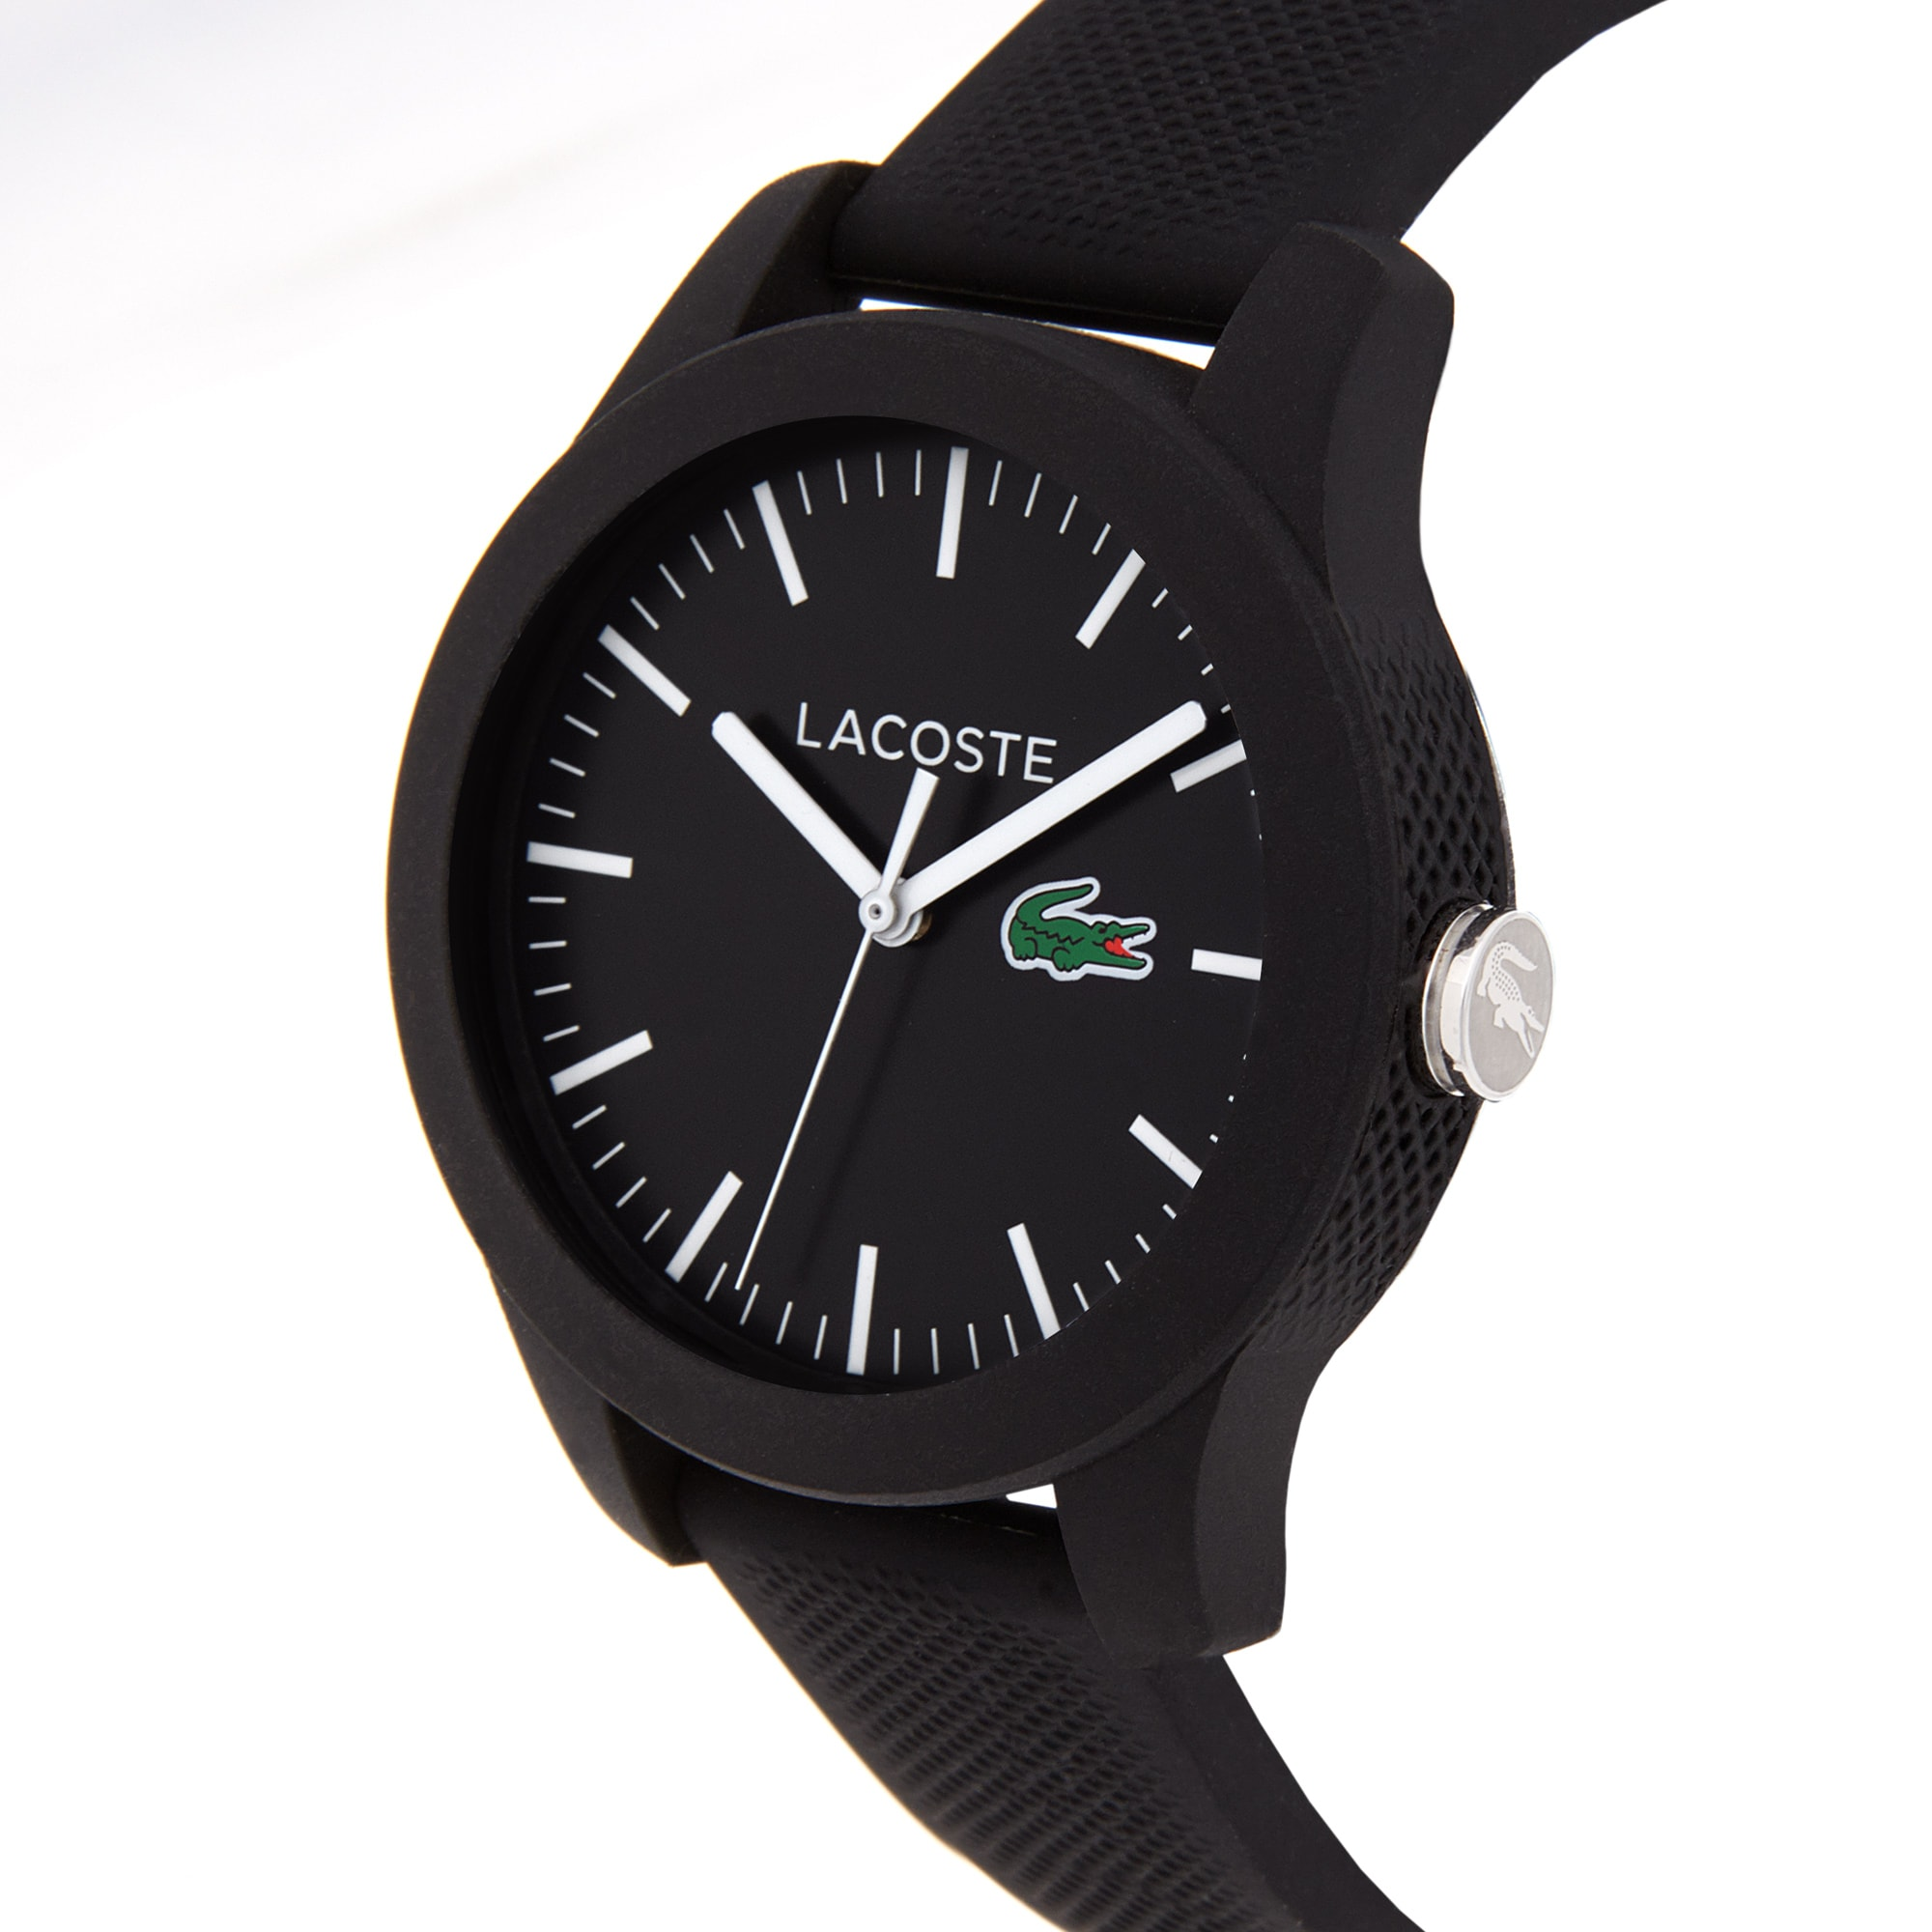 Women's Lacoste 12.12 Watch with Black Silicone Strap